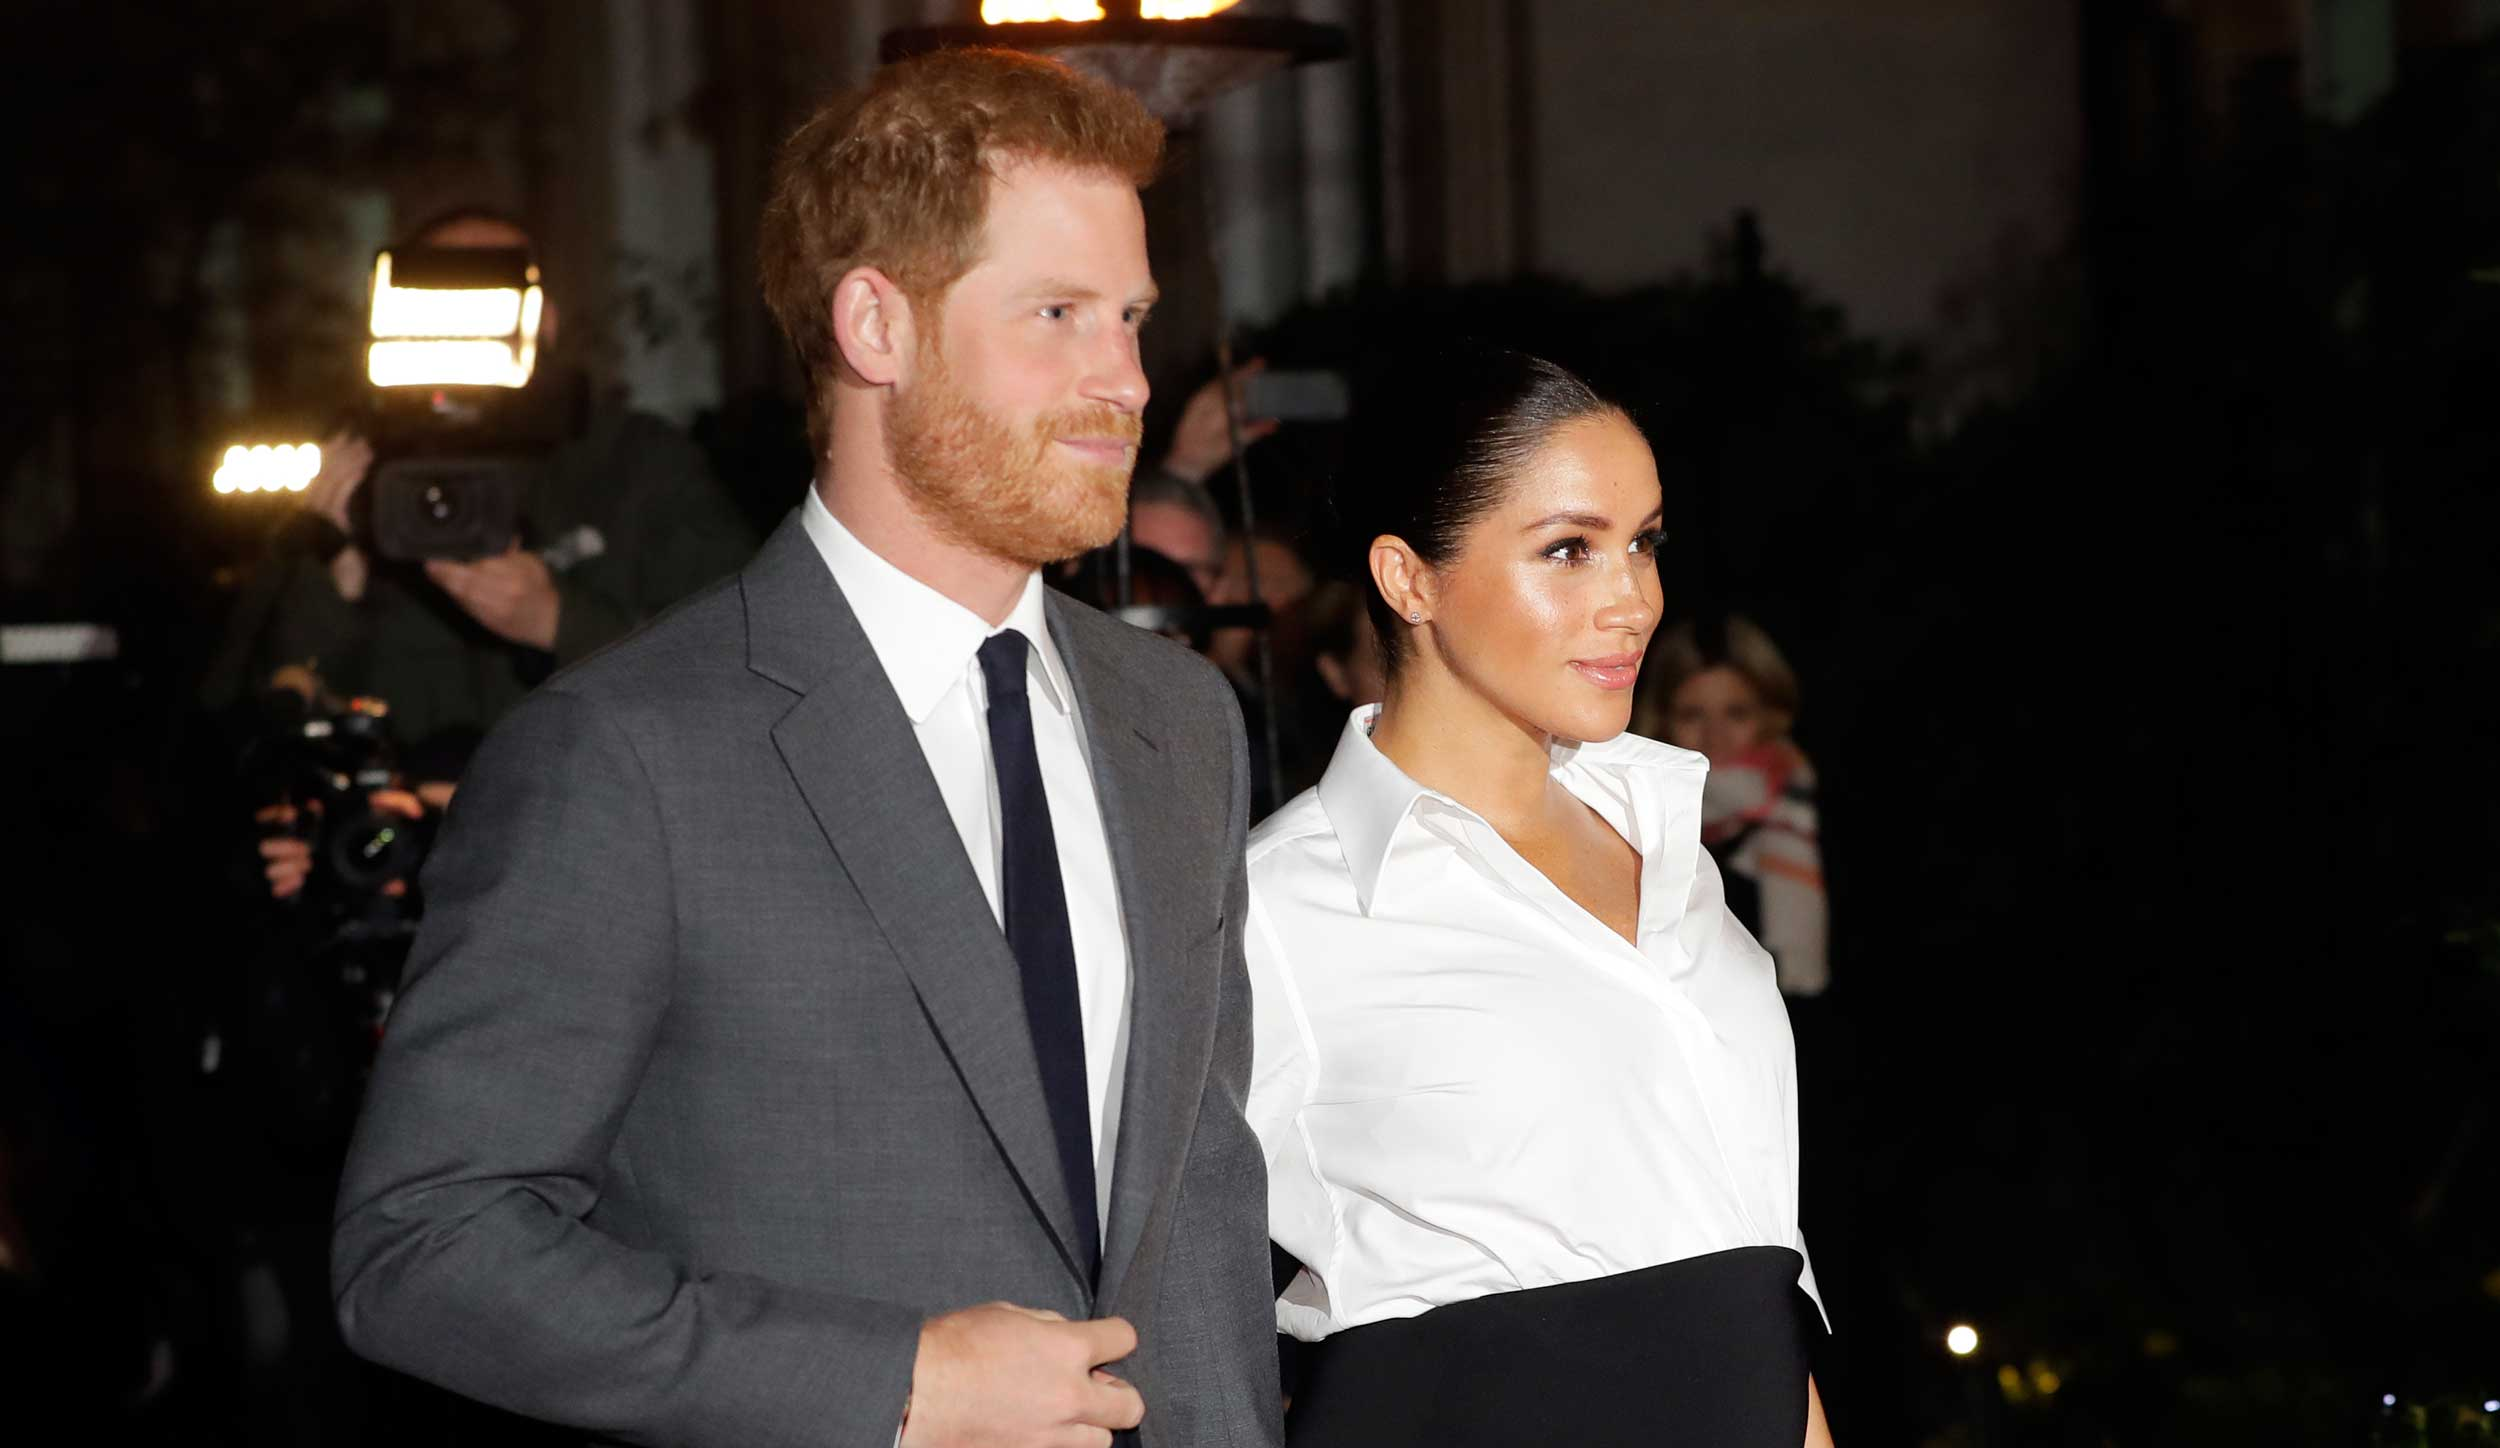 Prince Harry and Meghan arrive at the annual Endeavour Fund Awards in London, on February 7, 2019.